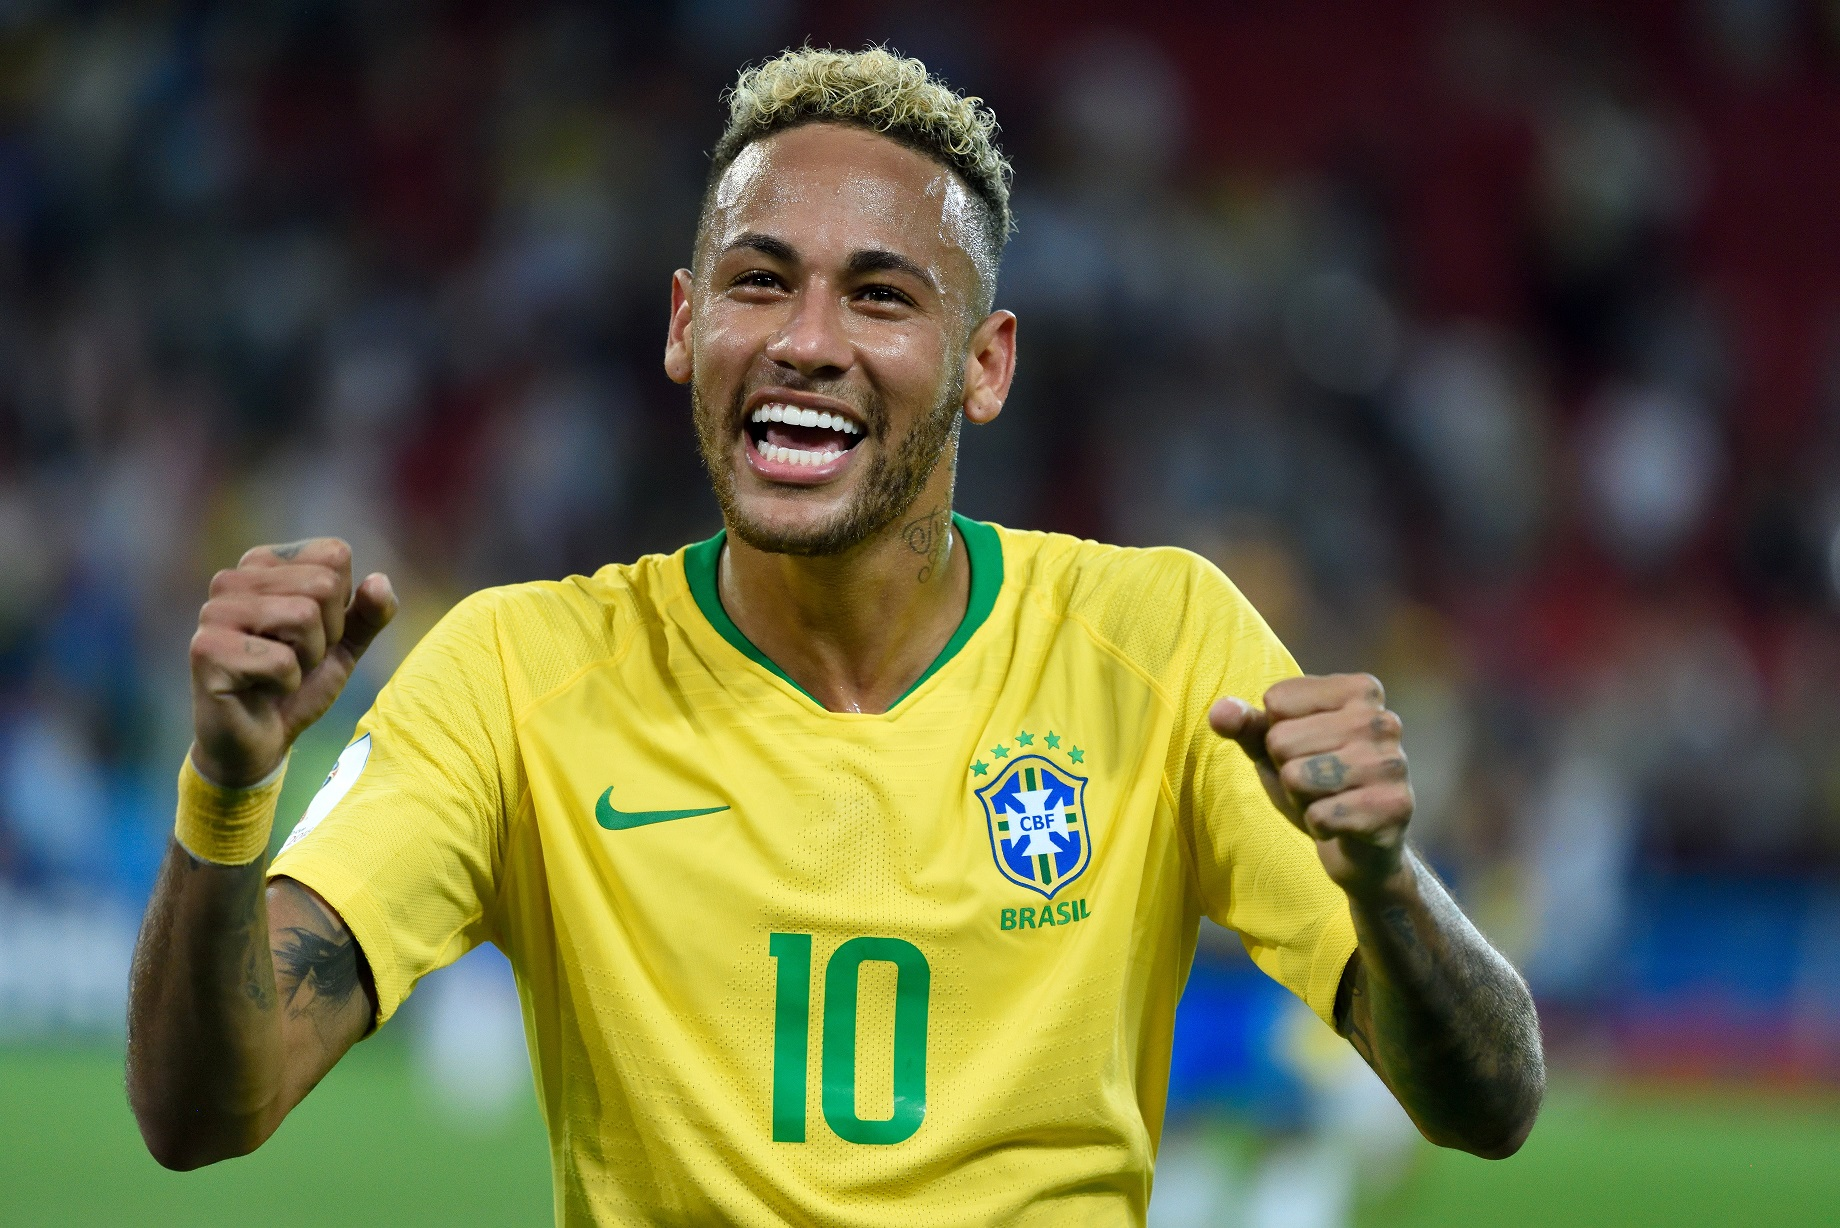 #RetirementPlans: Footballer to Pro Poker Player Neymar Jr says Andre Akkari